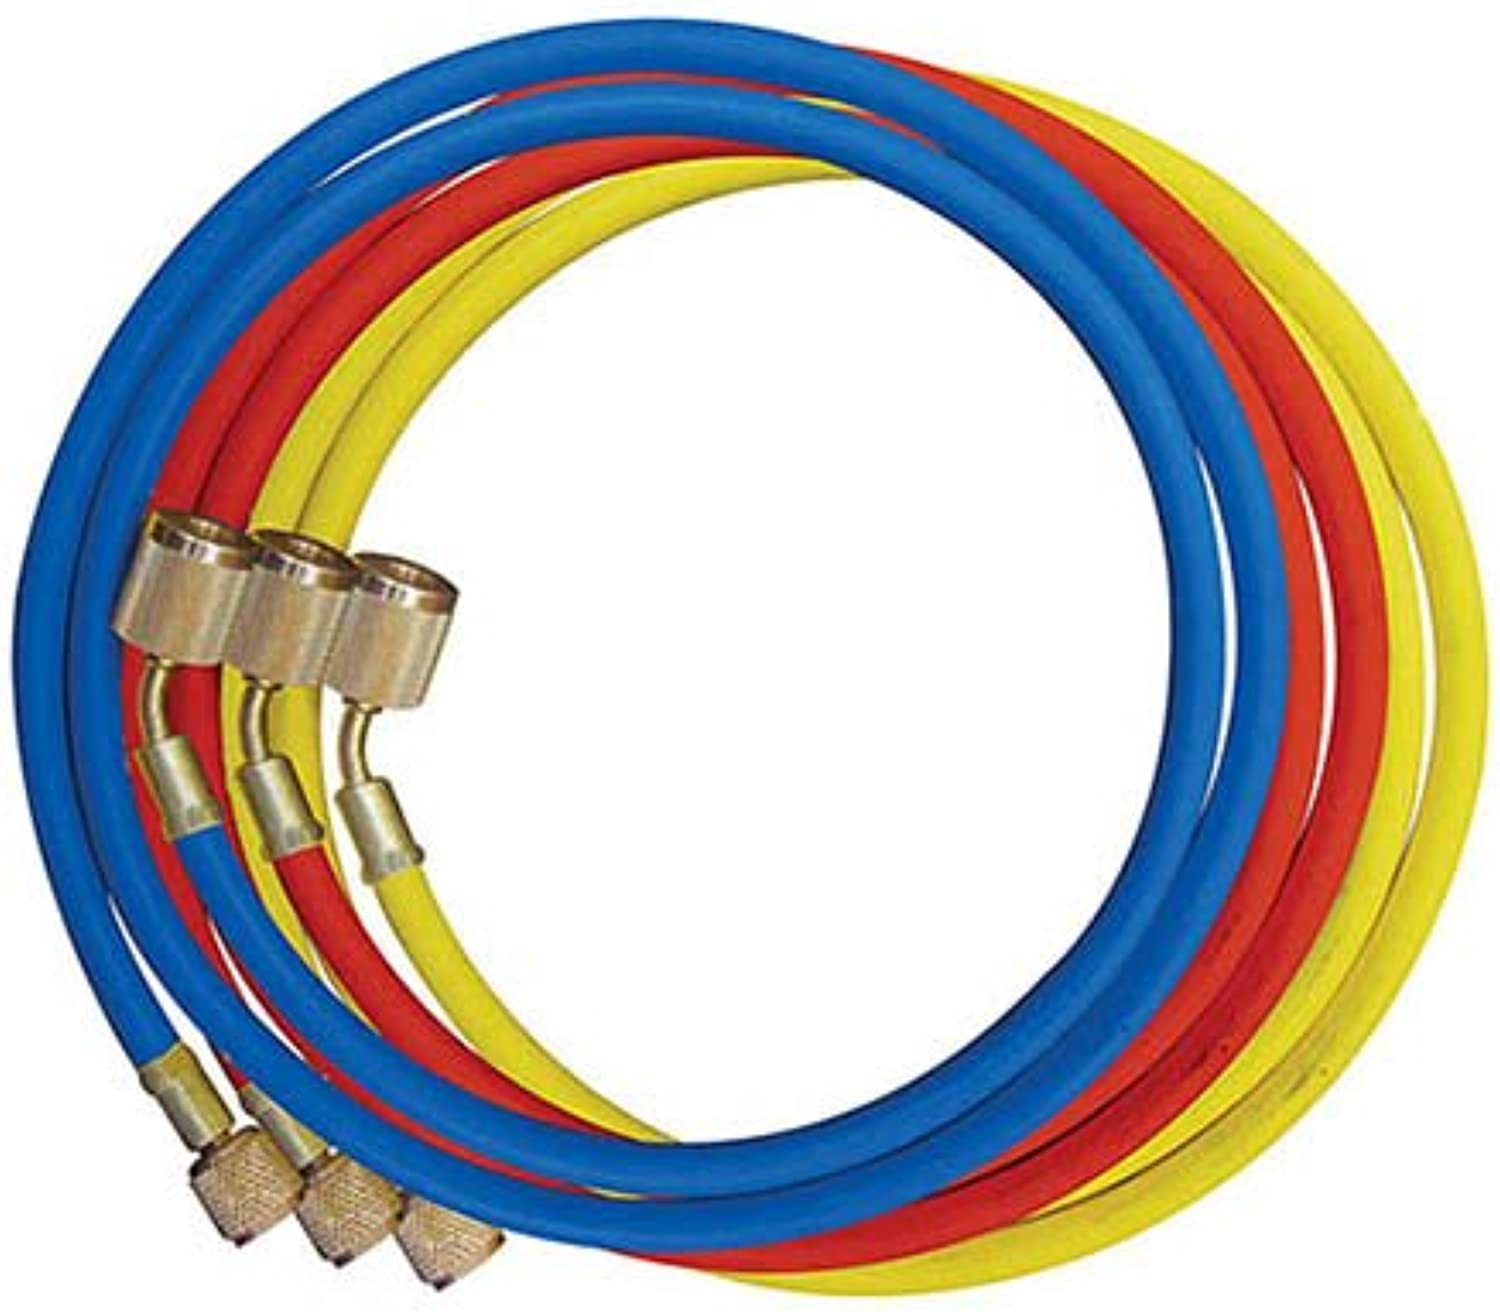 Rheem 45360 Rubber Refrigerant Hose Set, 5' Length, Anti-Blowback Fittings, 0.25  ID, 0.500  OD